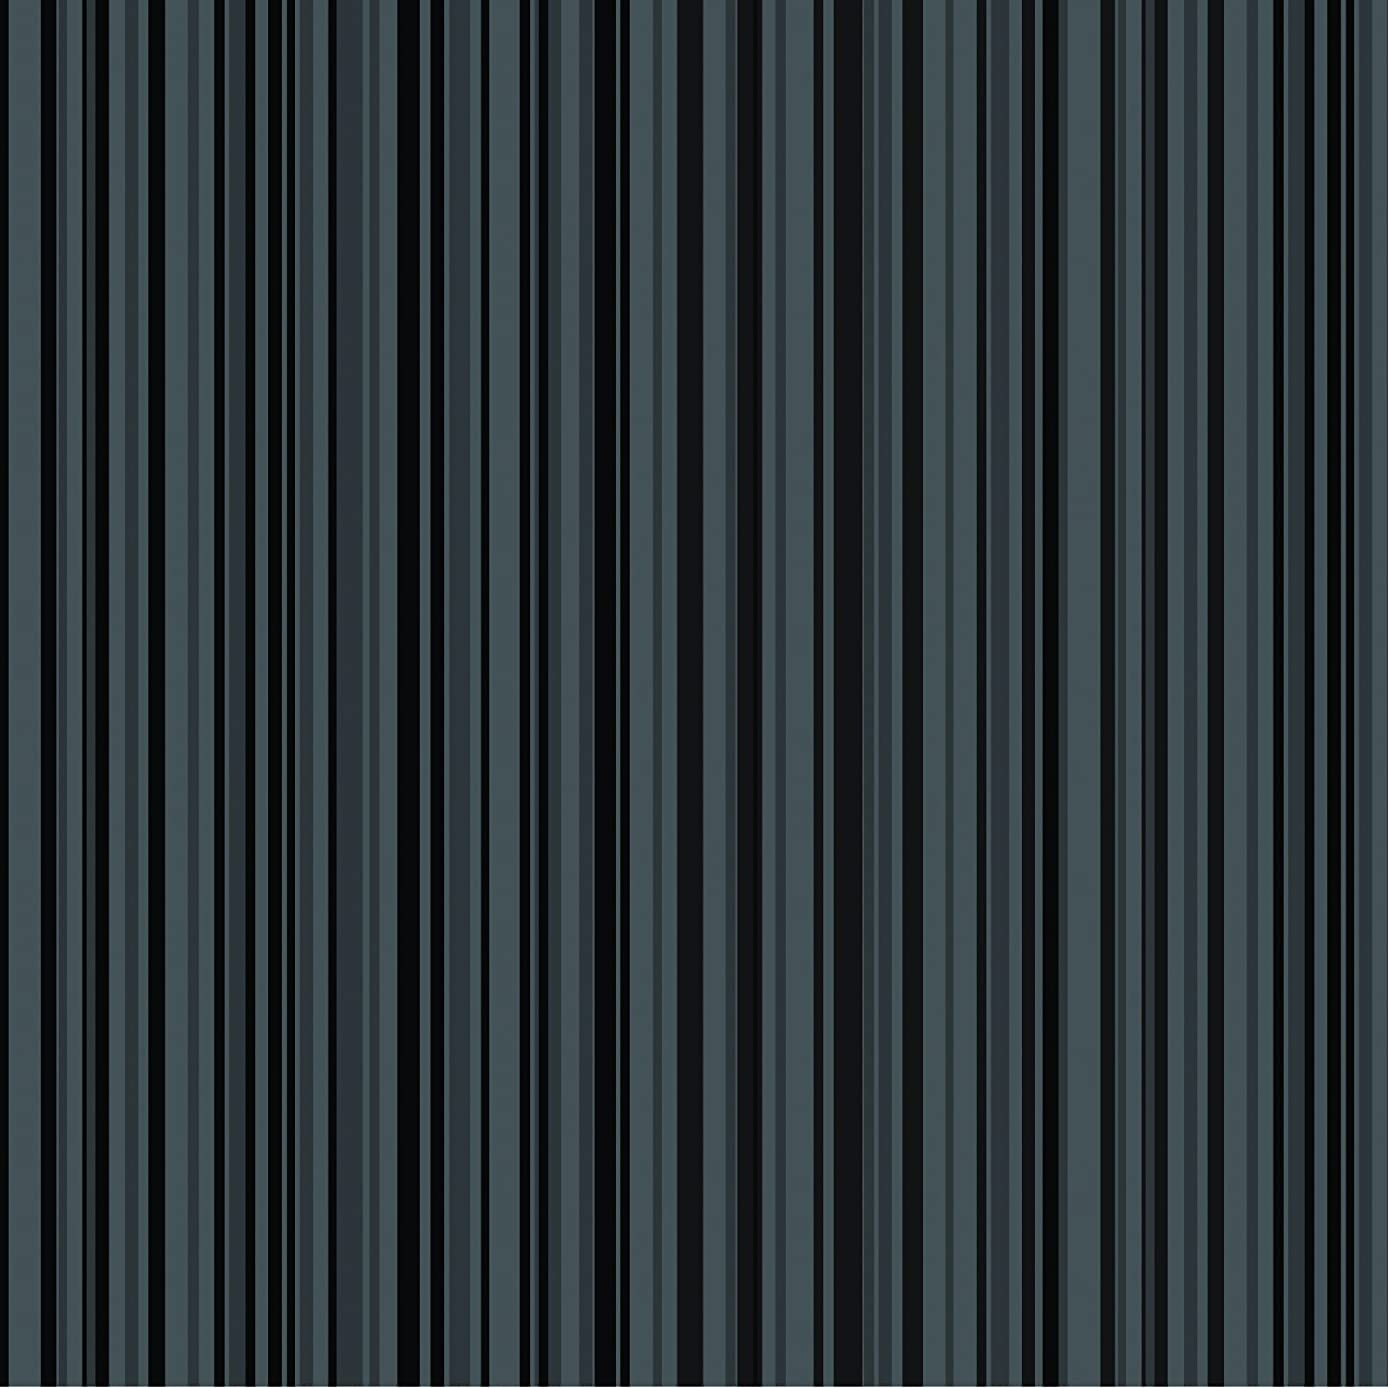 American Crafts Core'dinations 12 Pack of 12 x 12 Inch Patterned Paper Black Stripe,